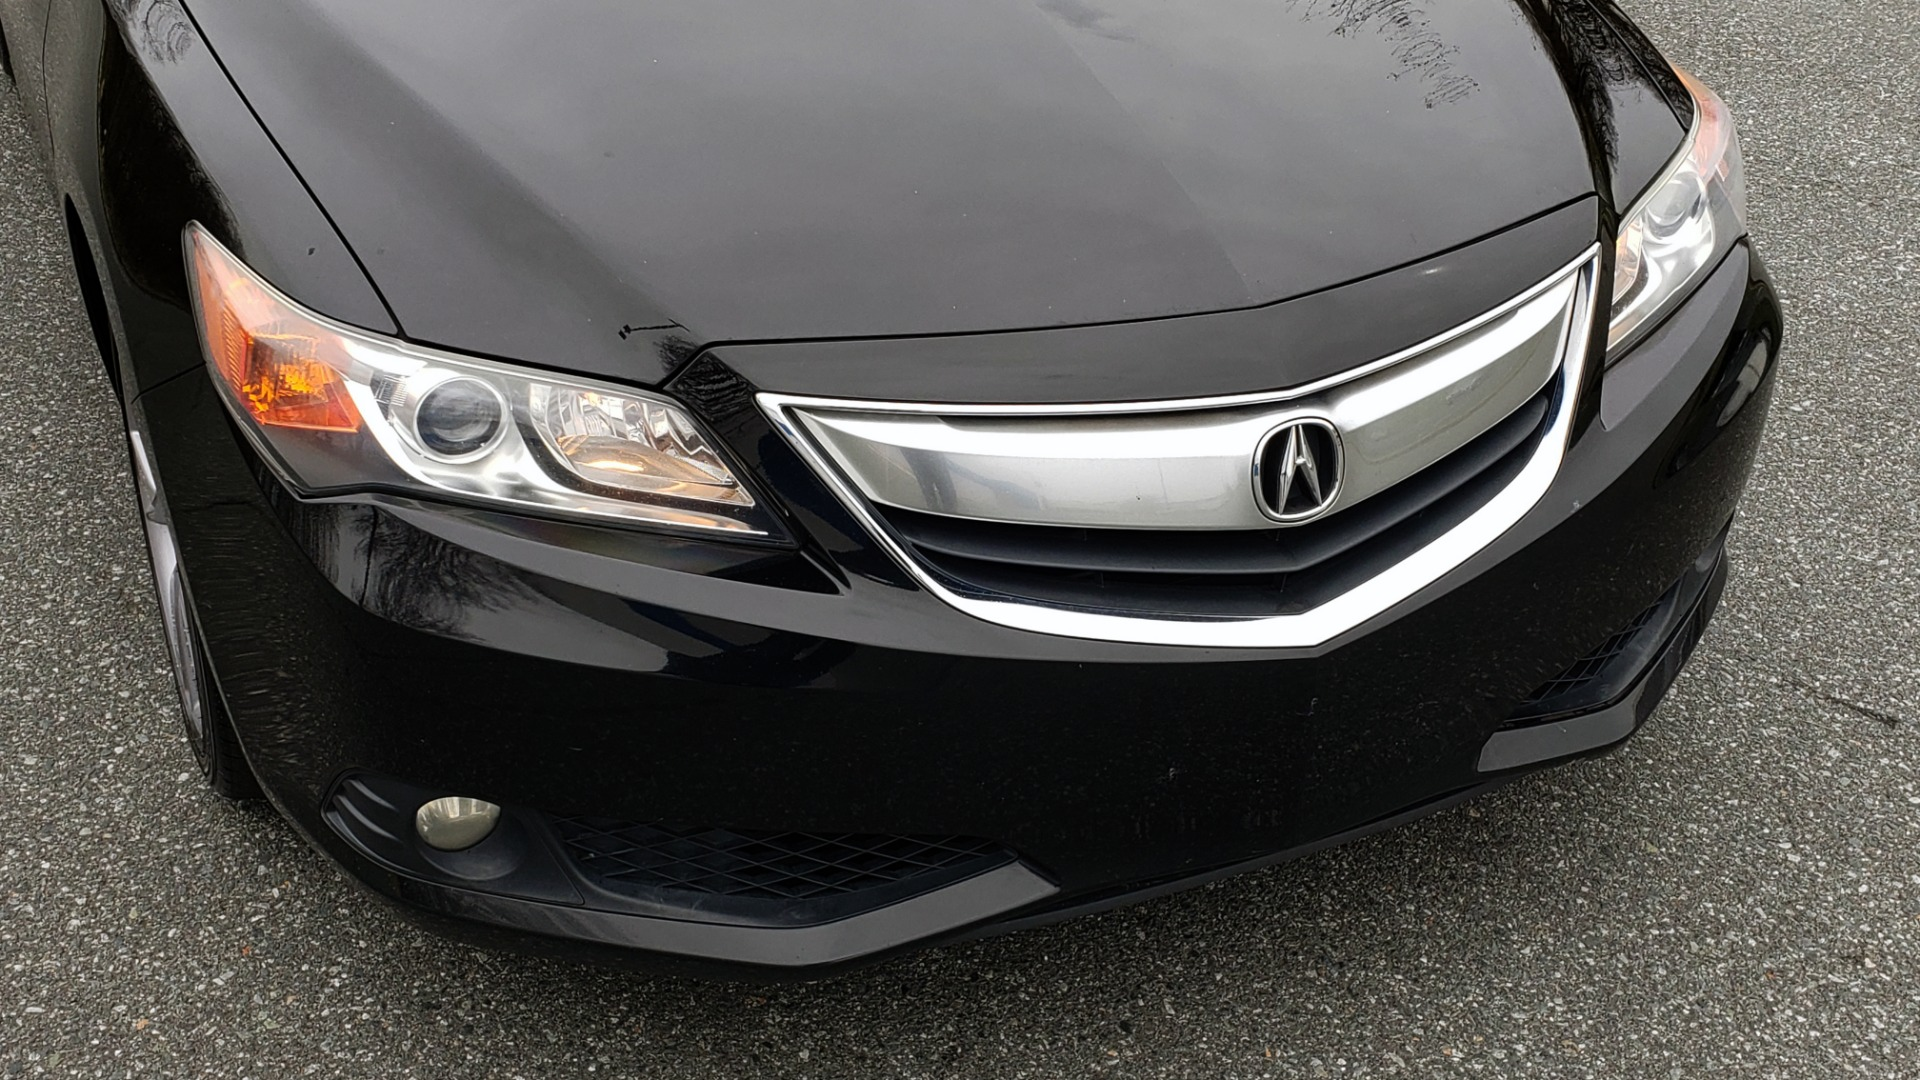 Used 2013 Acura ILX TECH PKG / SUNROOF / NAV / DUAL-ZONE A/C / REARVIEW for sale Sold at Formula Imports in Charlotte NC 28227 23